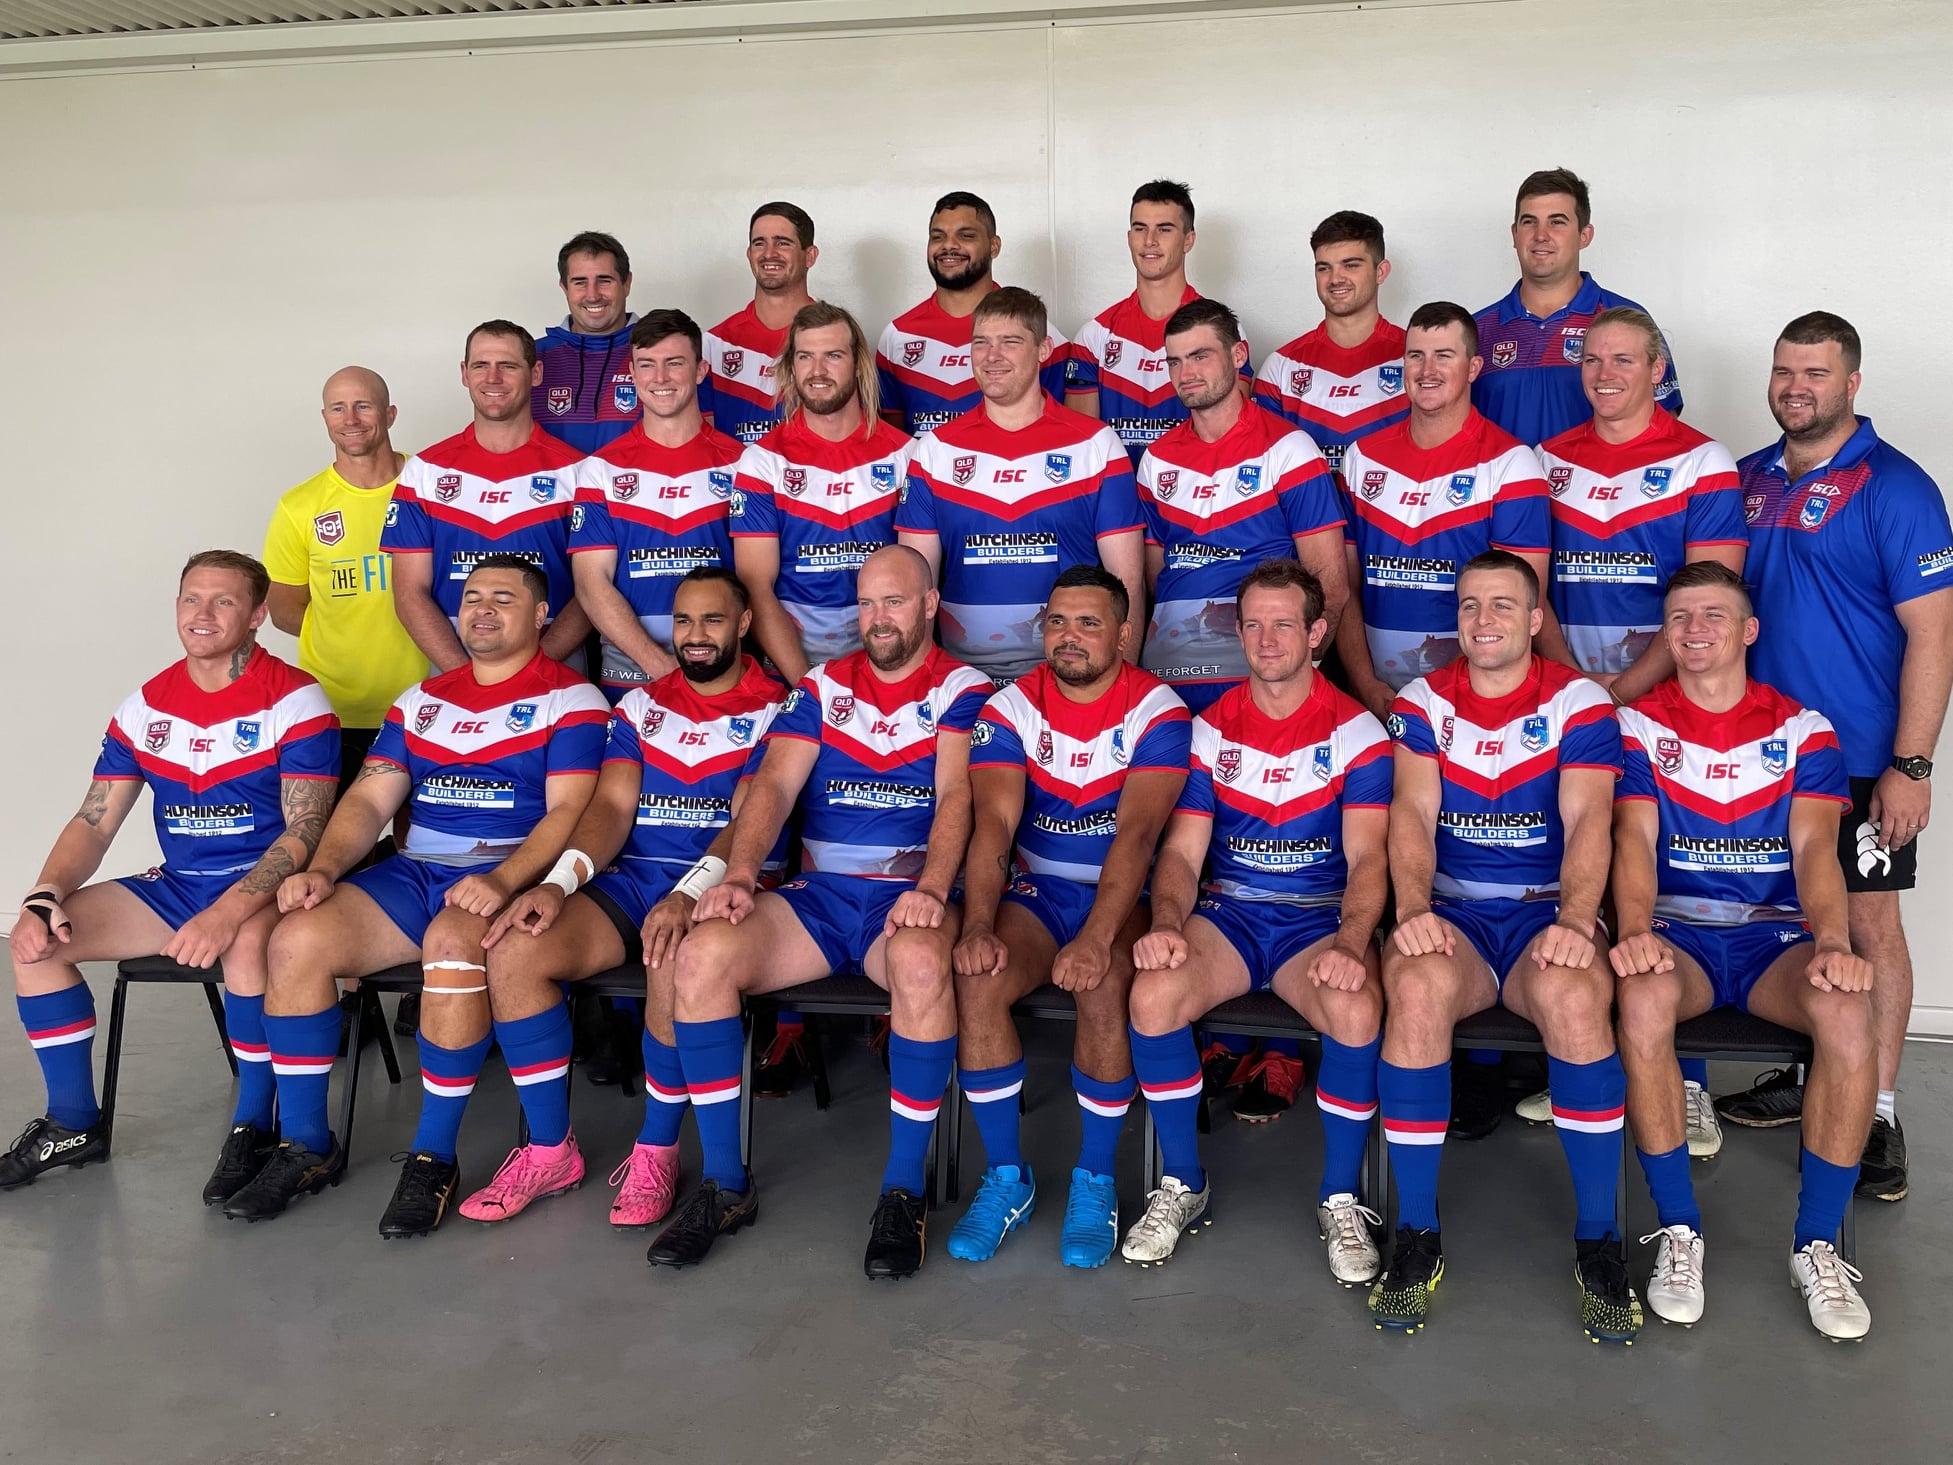 Toowoomba Clydesdale claim Men's 47th Battalion title